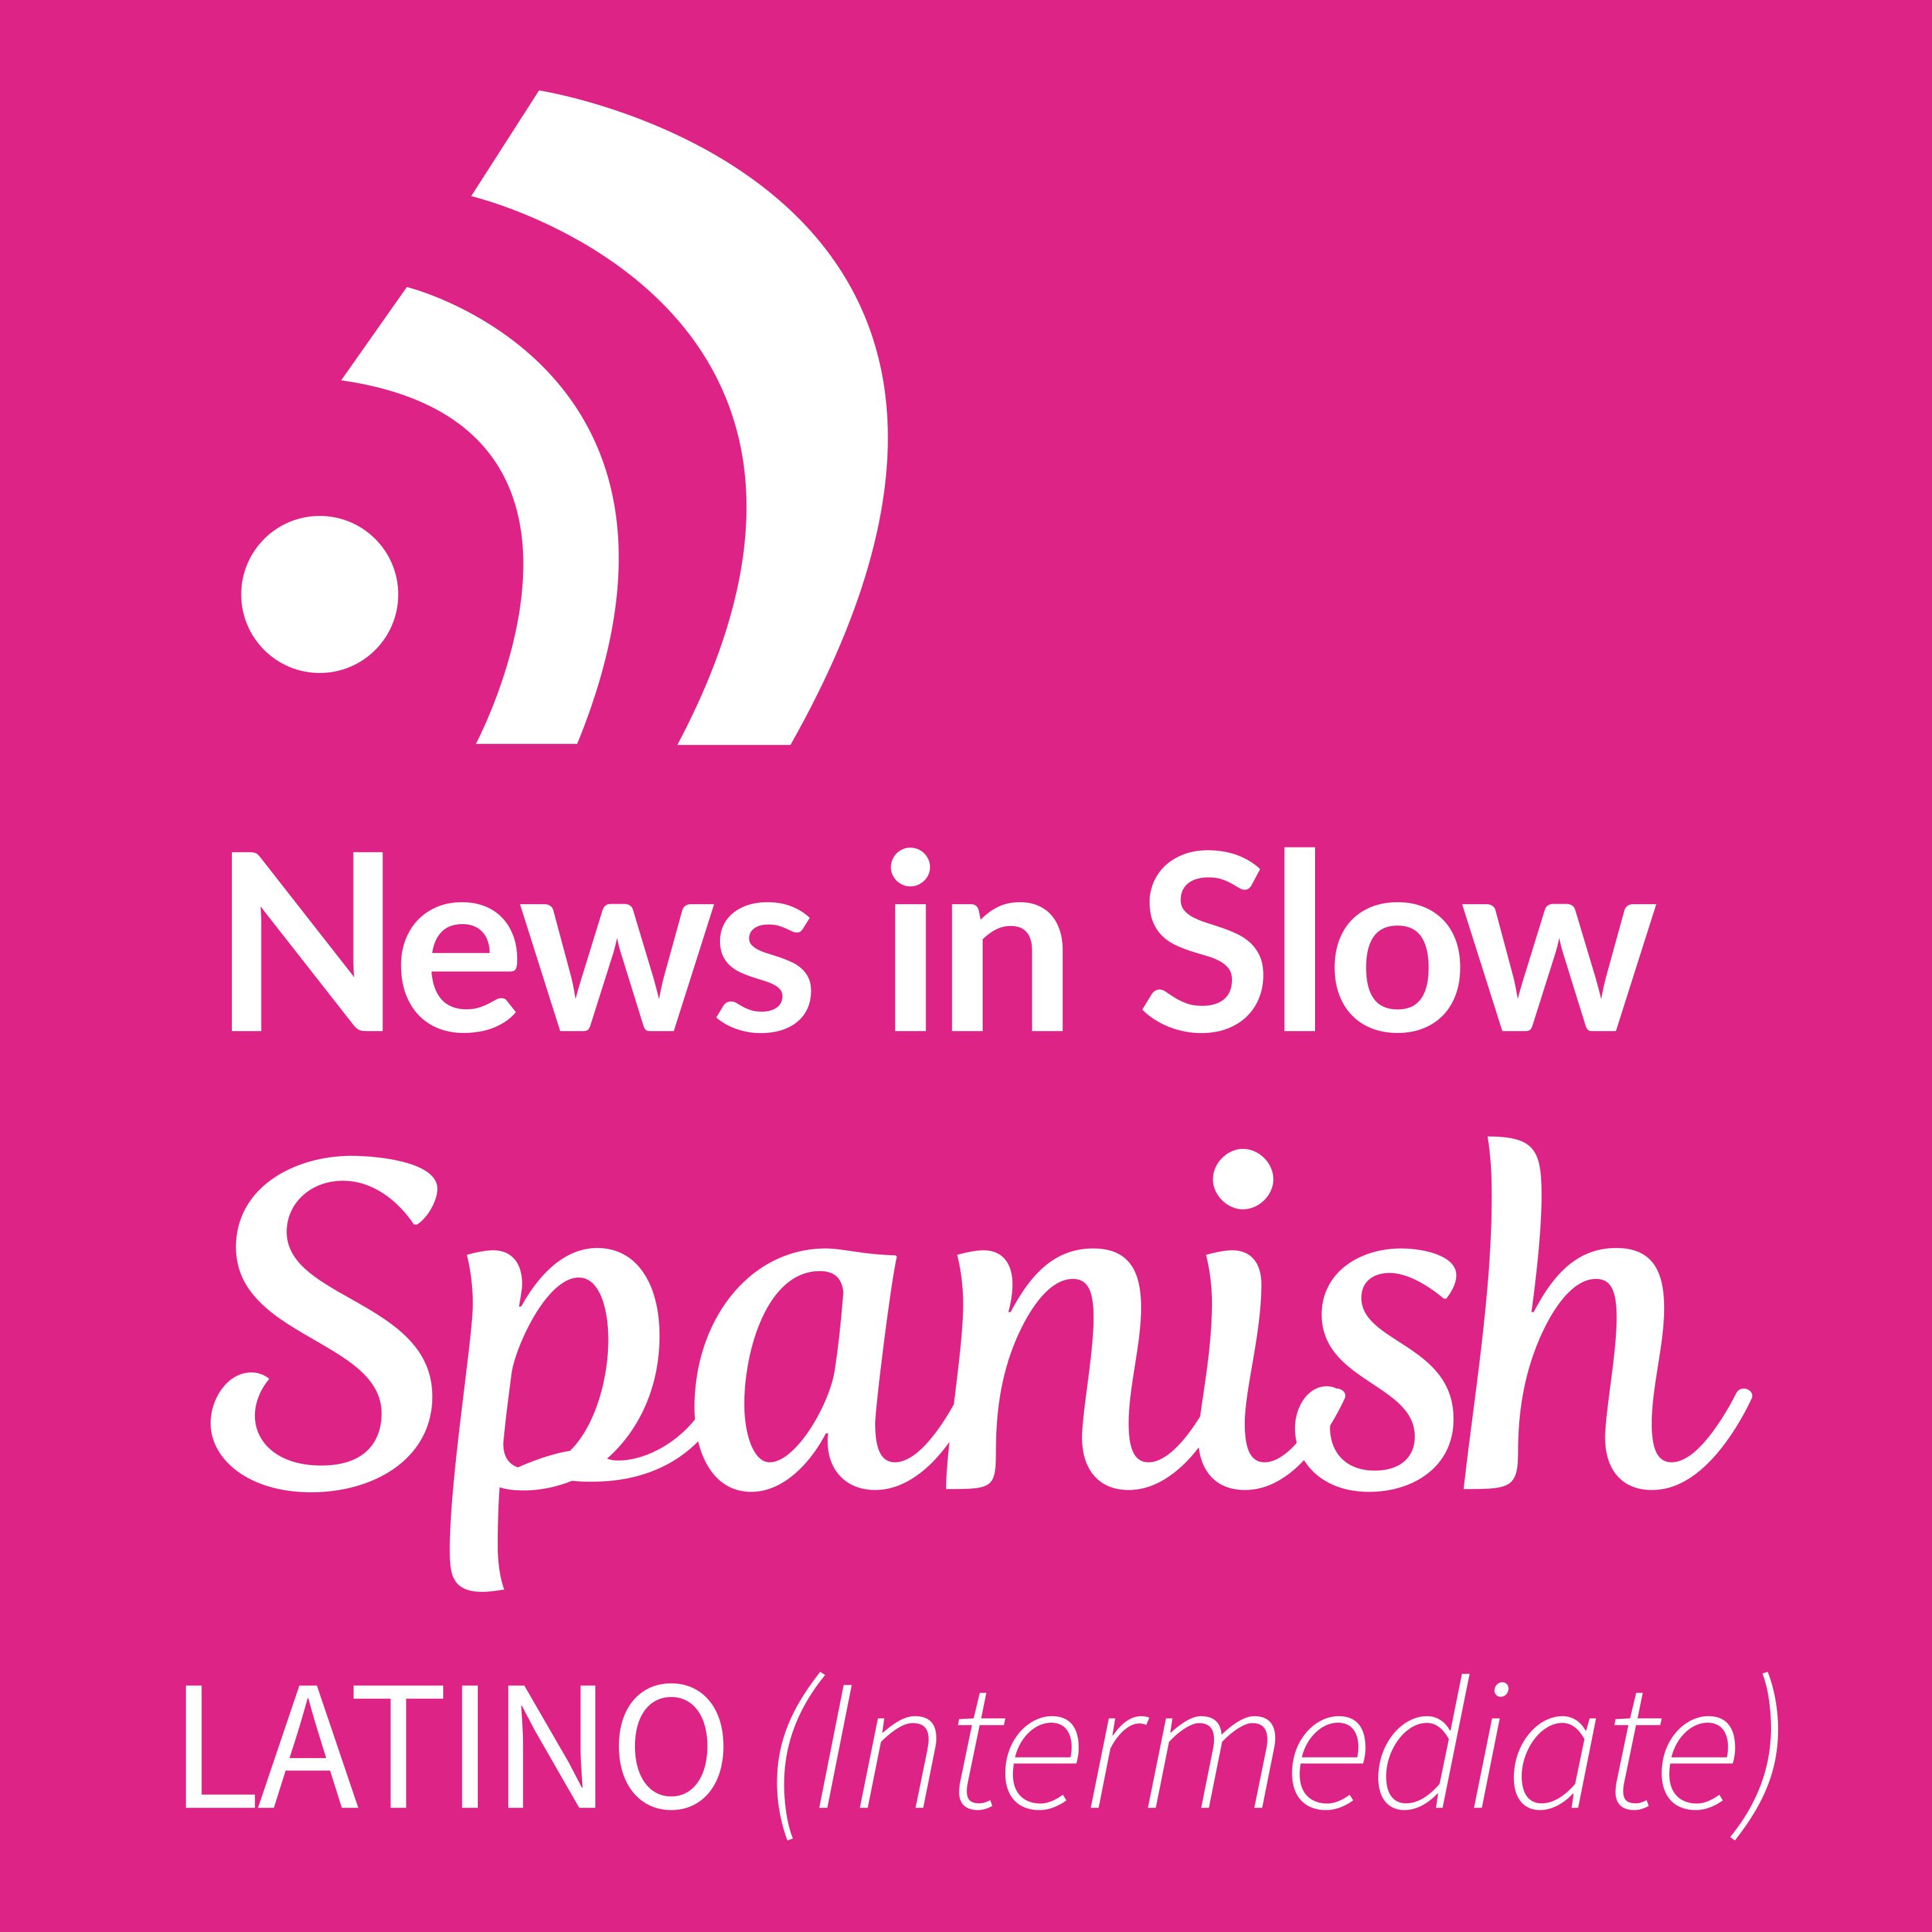 News in Slow Spanish Latino - # 145 - Spanish grammar, news and expressions